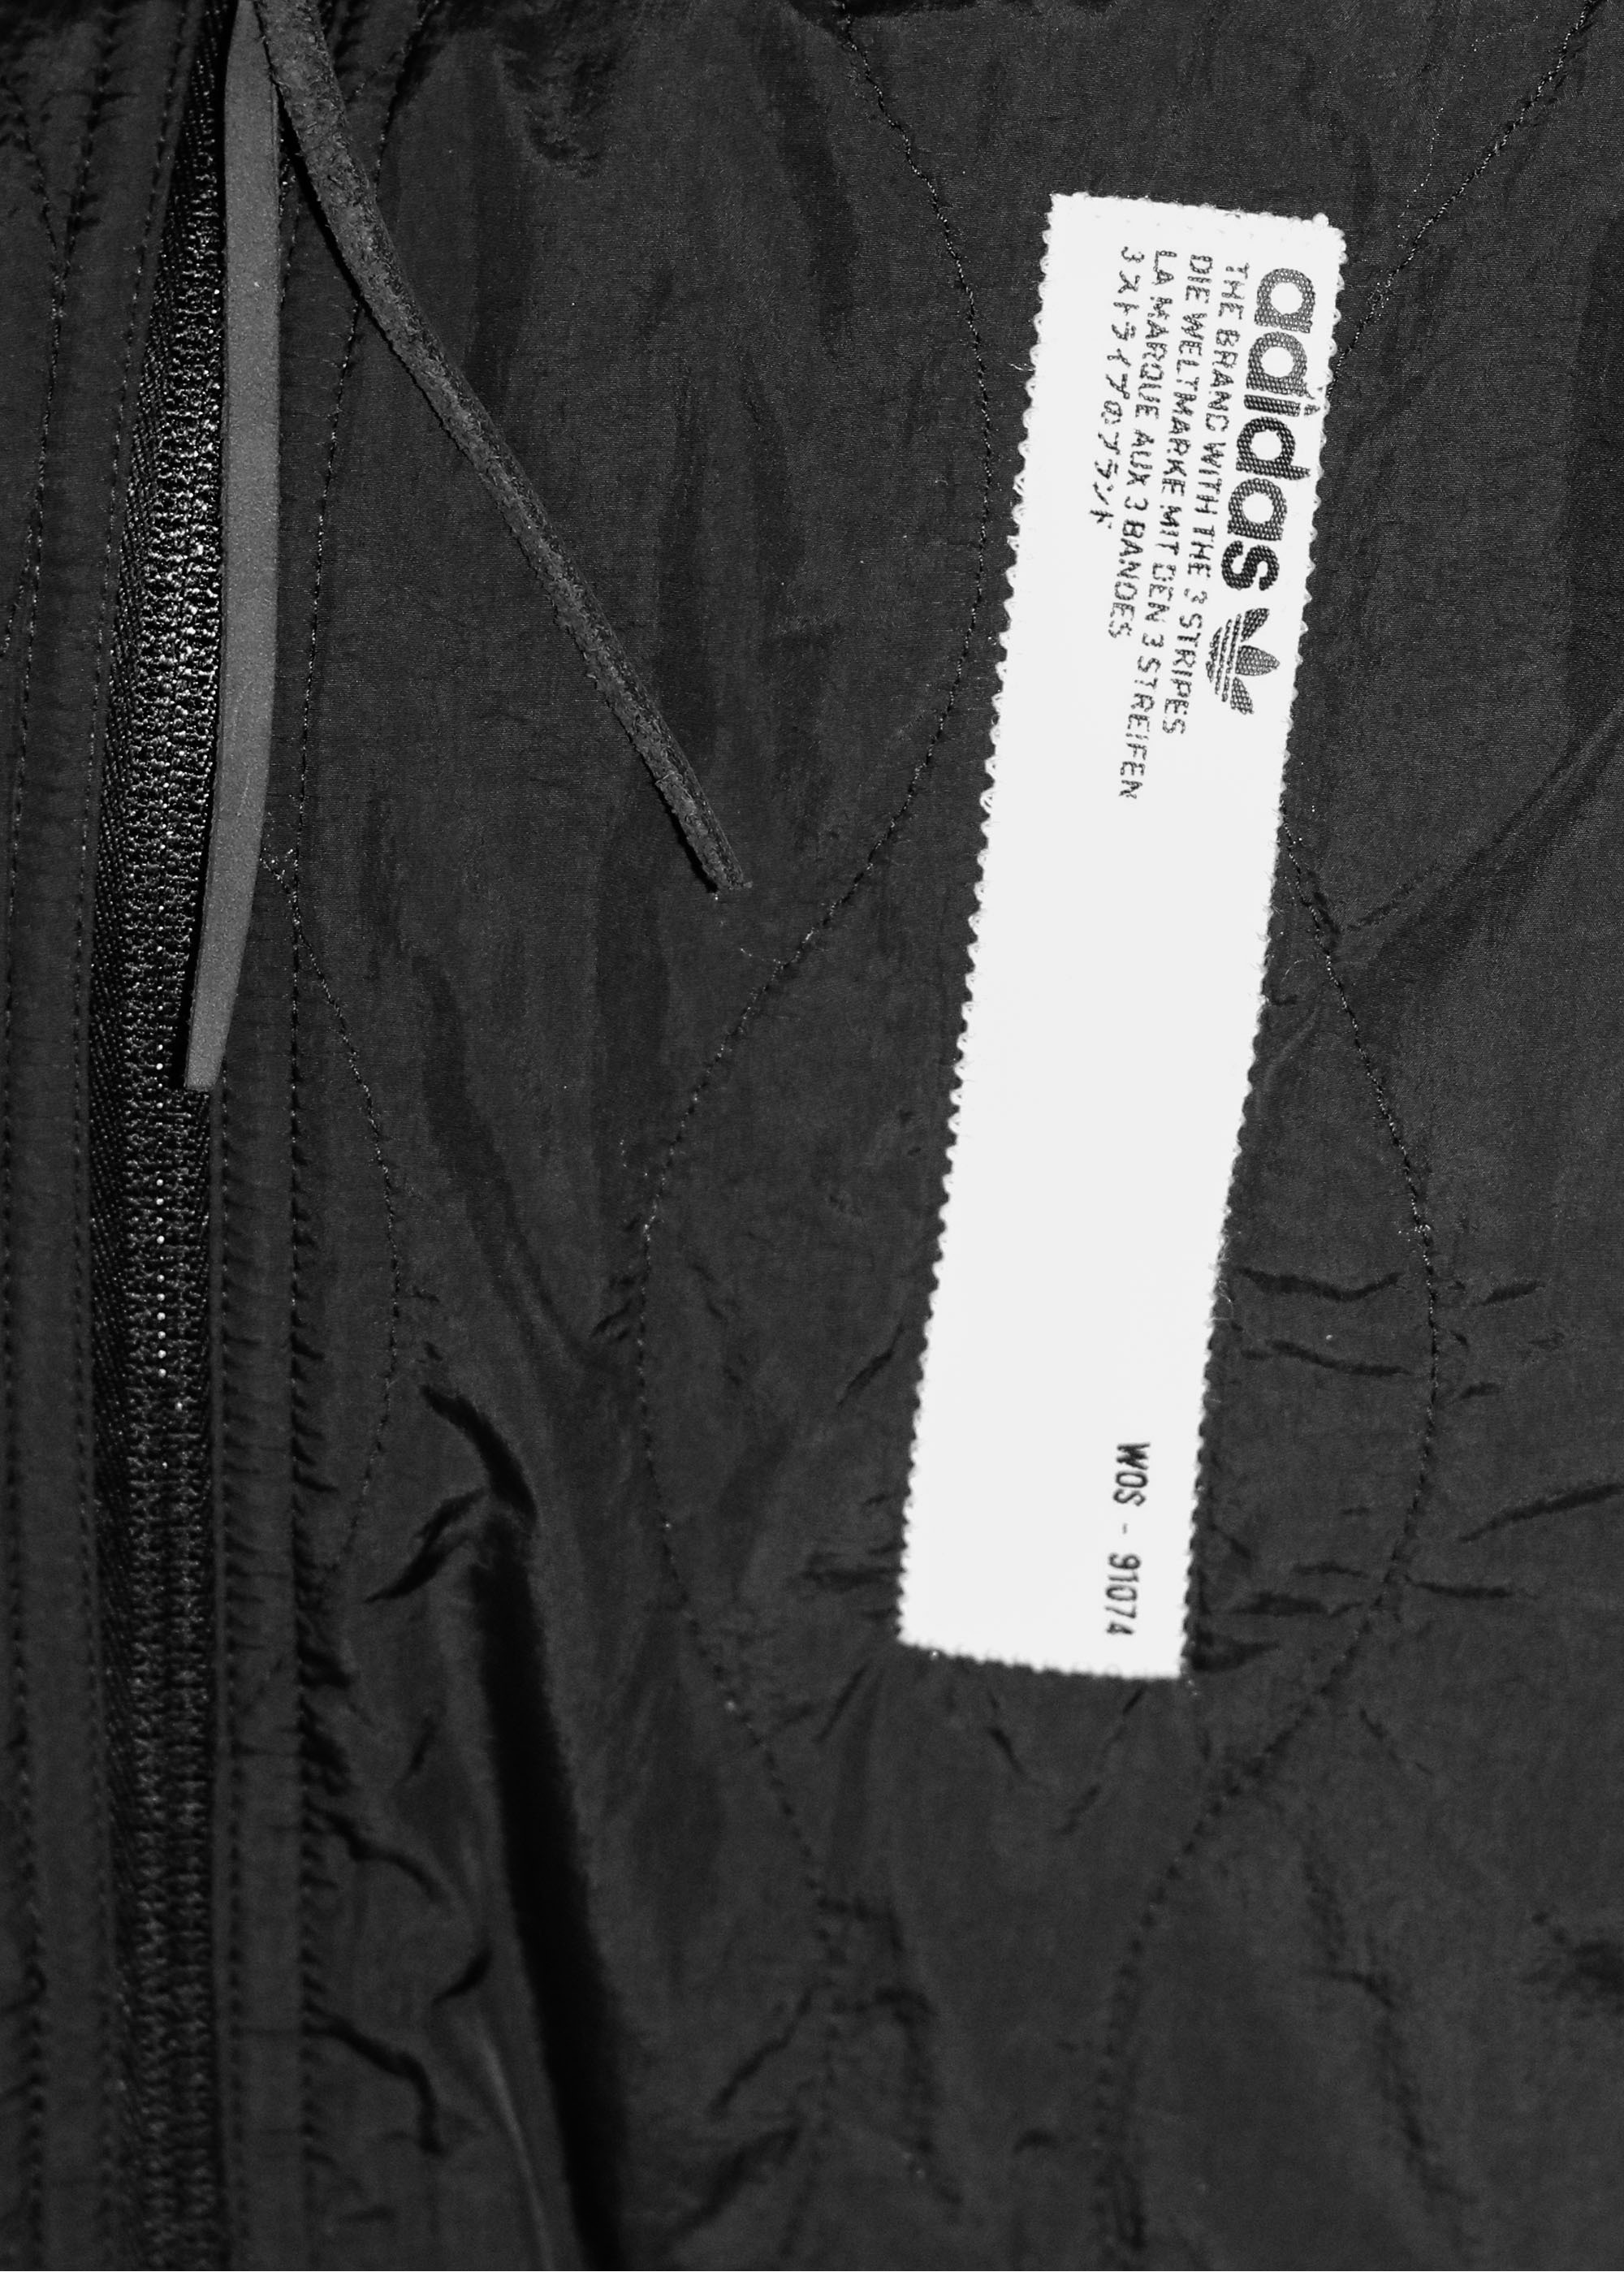 2361cfdf8 adidas Originals Apparel NMD Primaloft Track Jacket - Black - Triads ...